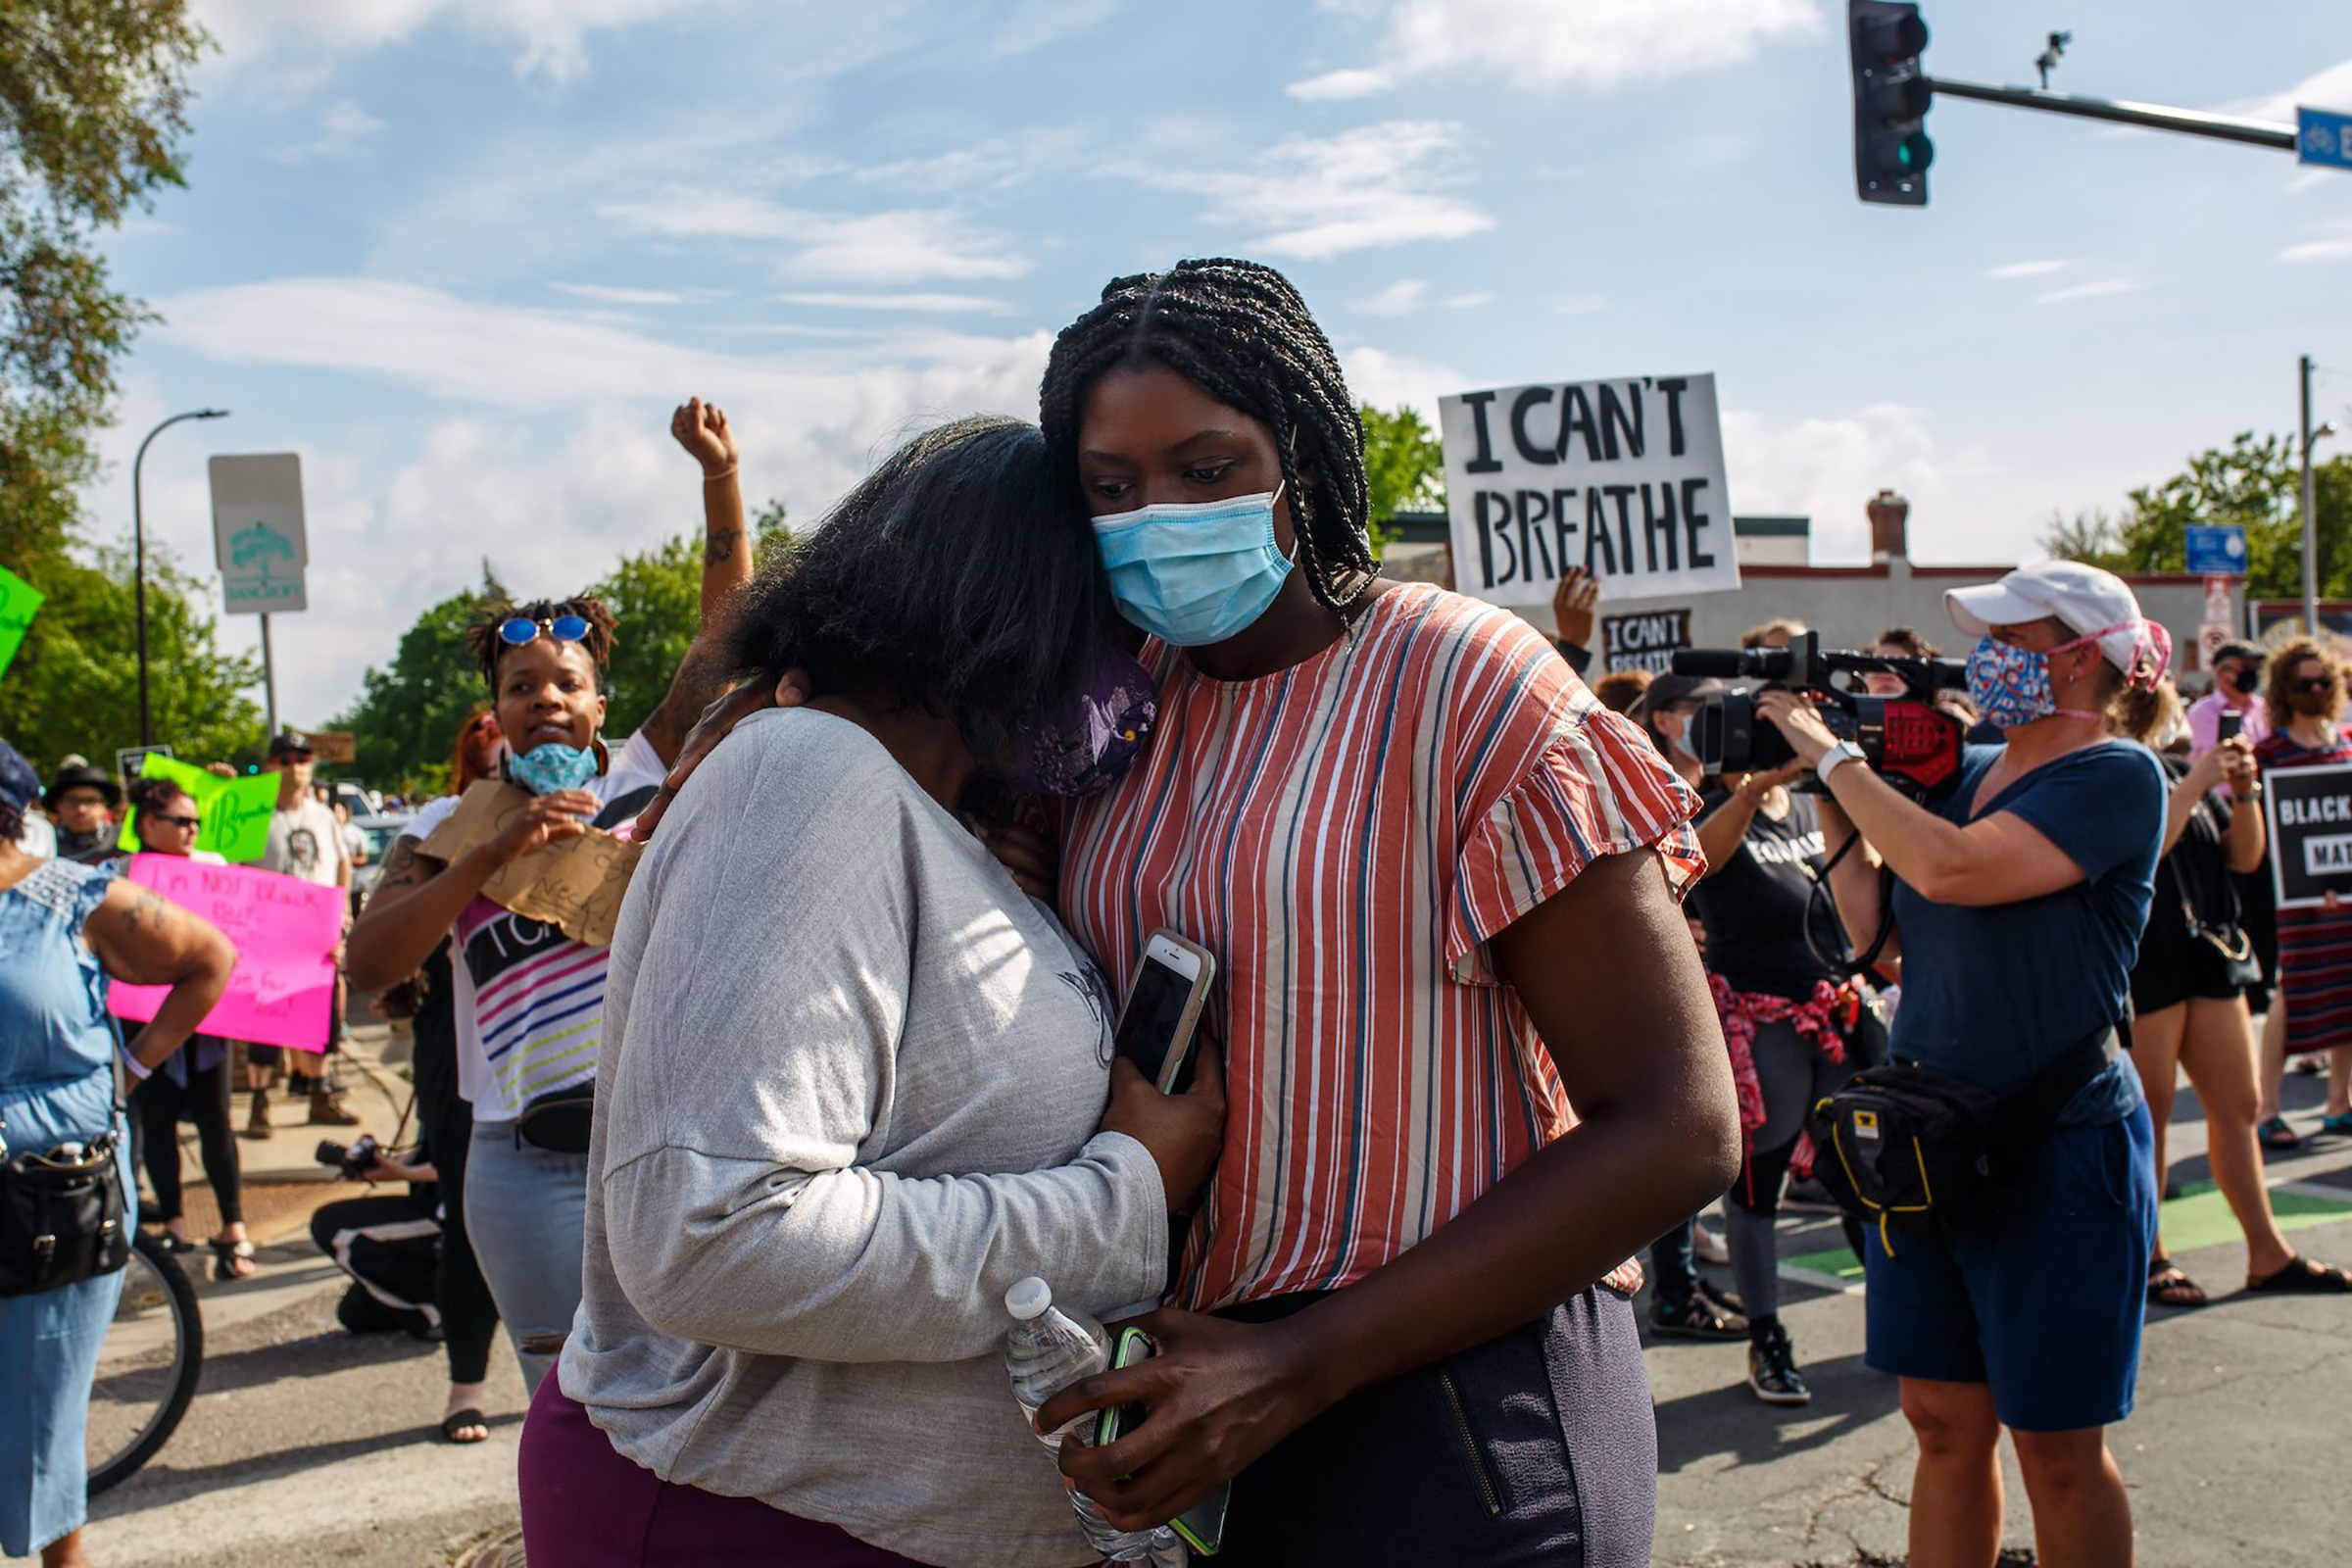 Two women embrace at a protest over the killing of George Floyd in Minneapolis on May 26, 2020.